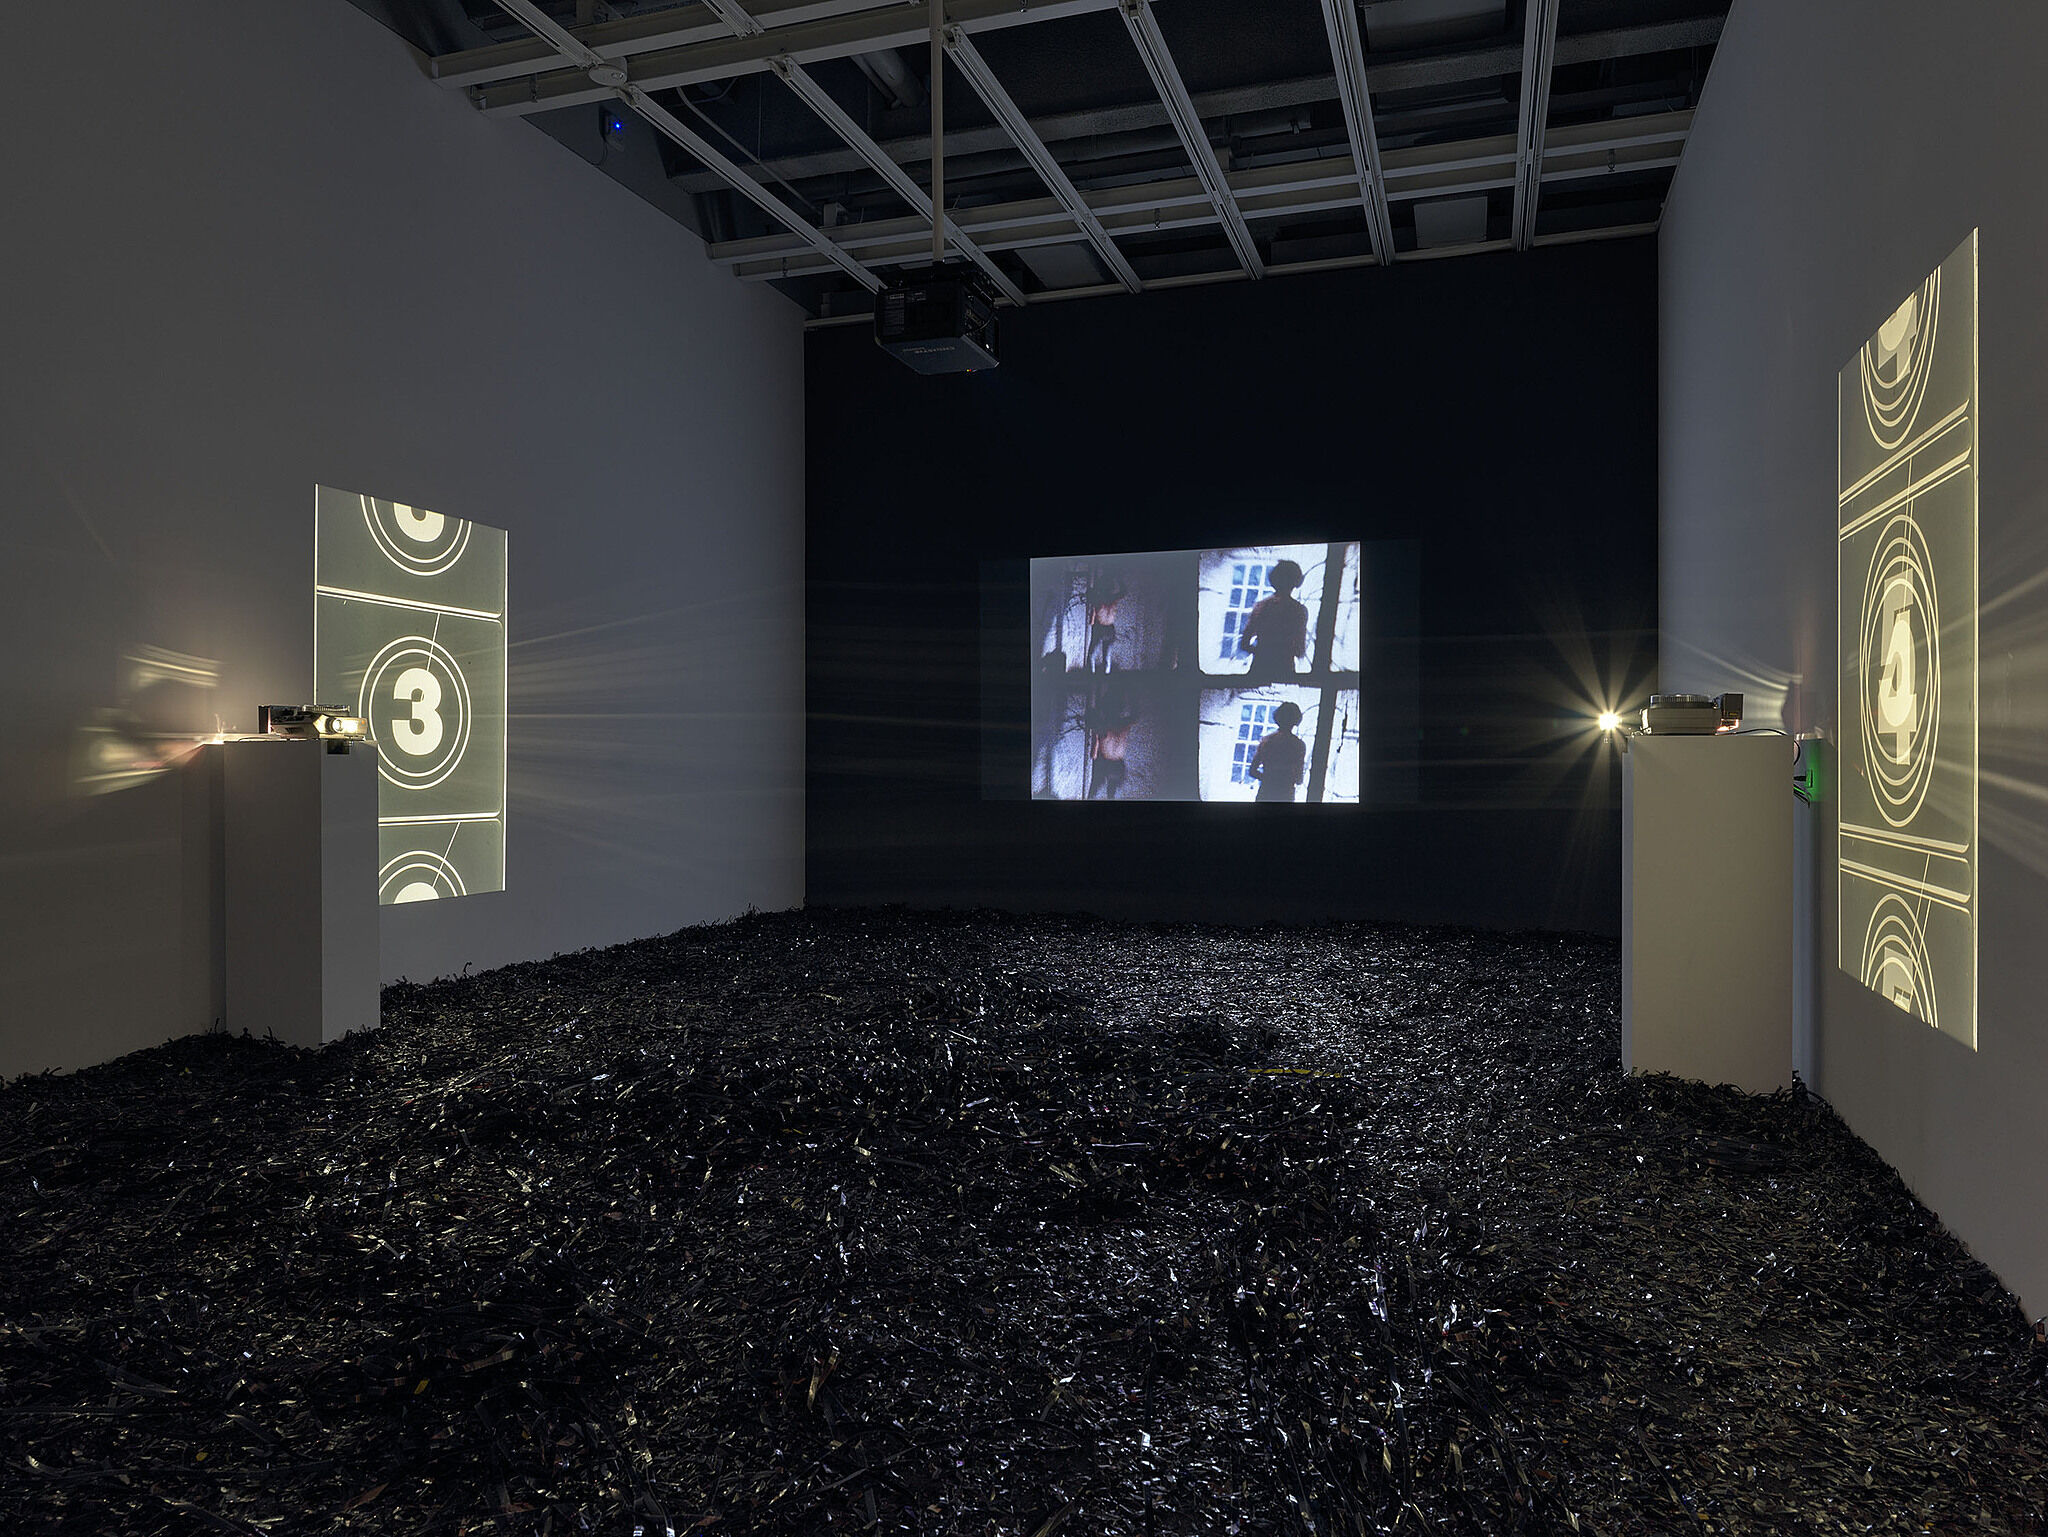 An installation view with three projection screens and black material on the floor.